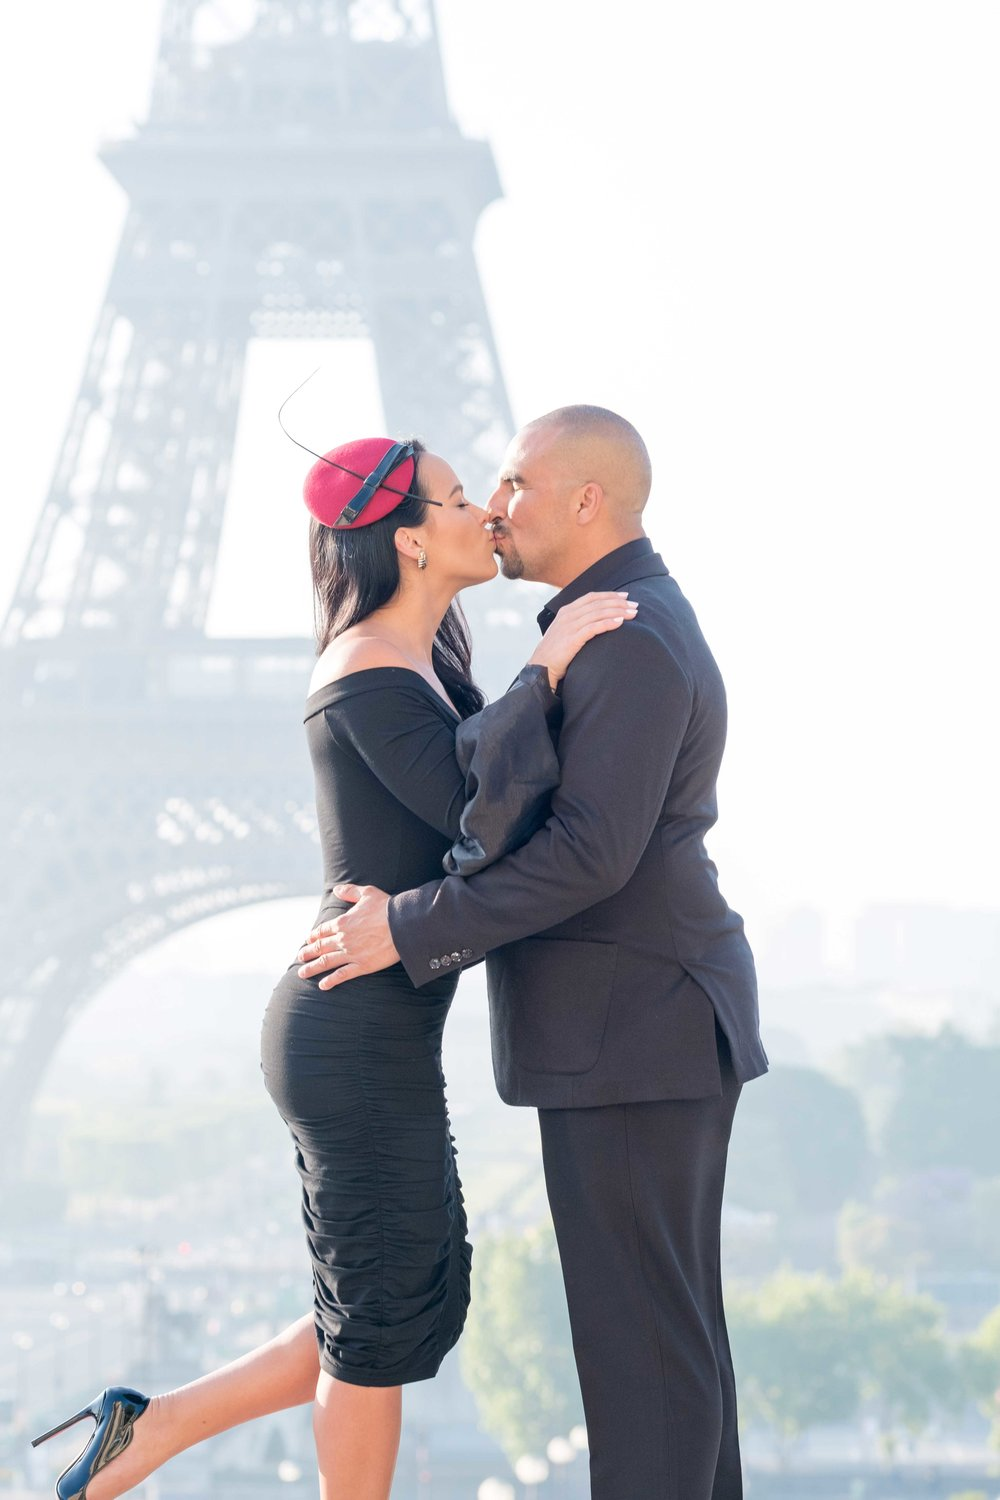 jessica & alvaro - This dynamic, recently engaged couple from Miami, Florida blew me away with their style and elegance. We spent a beautiful Saturday morning together exploring areas by the Eiffel Tower and Louvre. Don't you love her red hat?See more images here